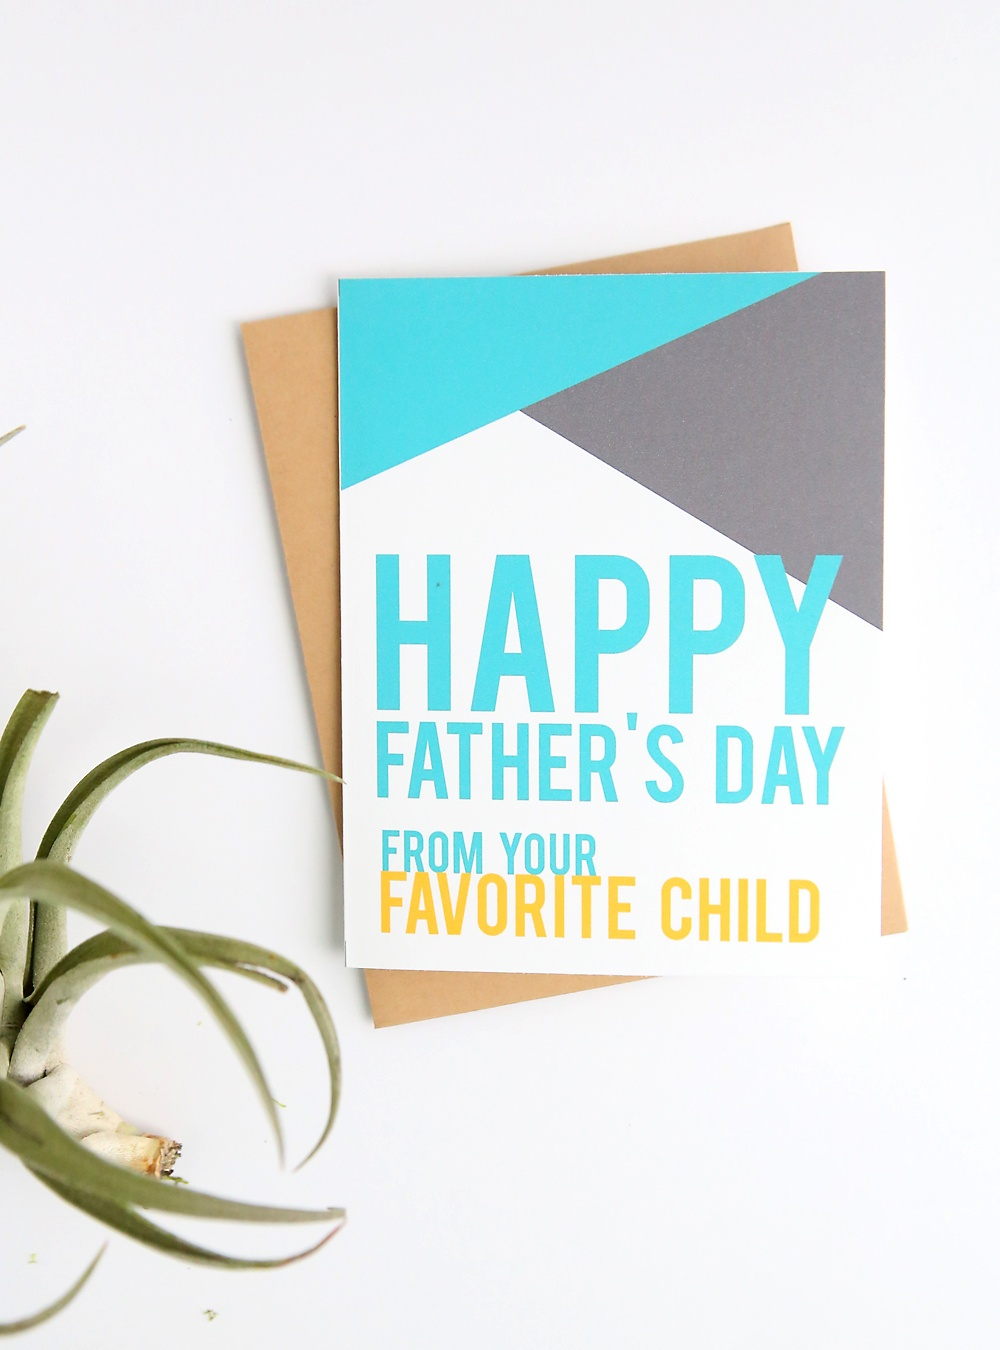 Funny Father's Day Cards You Can Print At Home - It's Always Autumn - Free Printable Funny Father's Day Cards